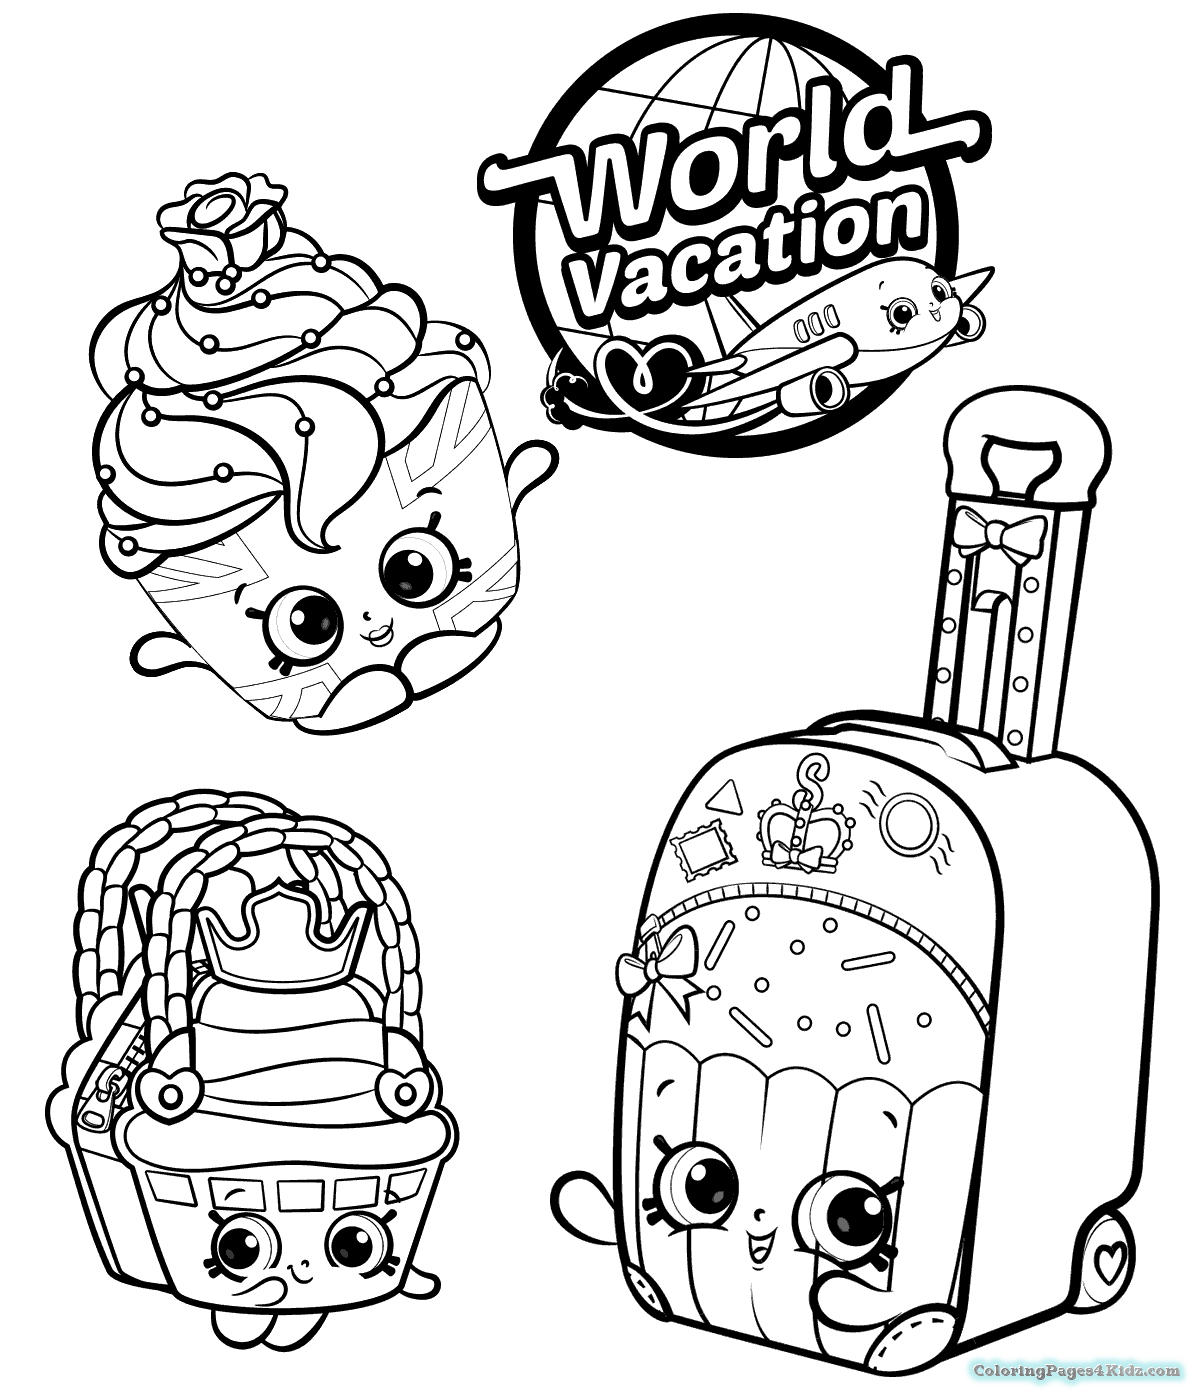 Pin by Inspired on Coloring Pages Shopkin coloring pages Shopkins colouring pages Cute